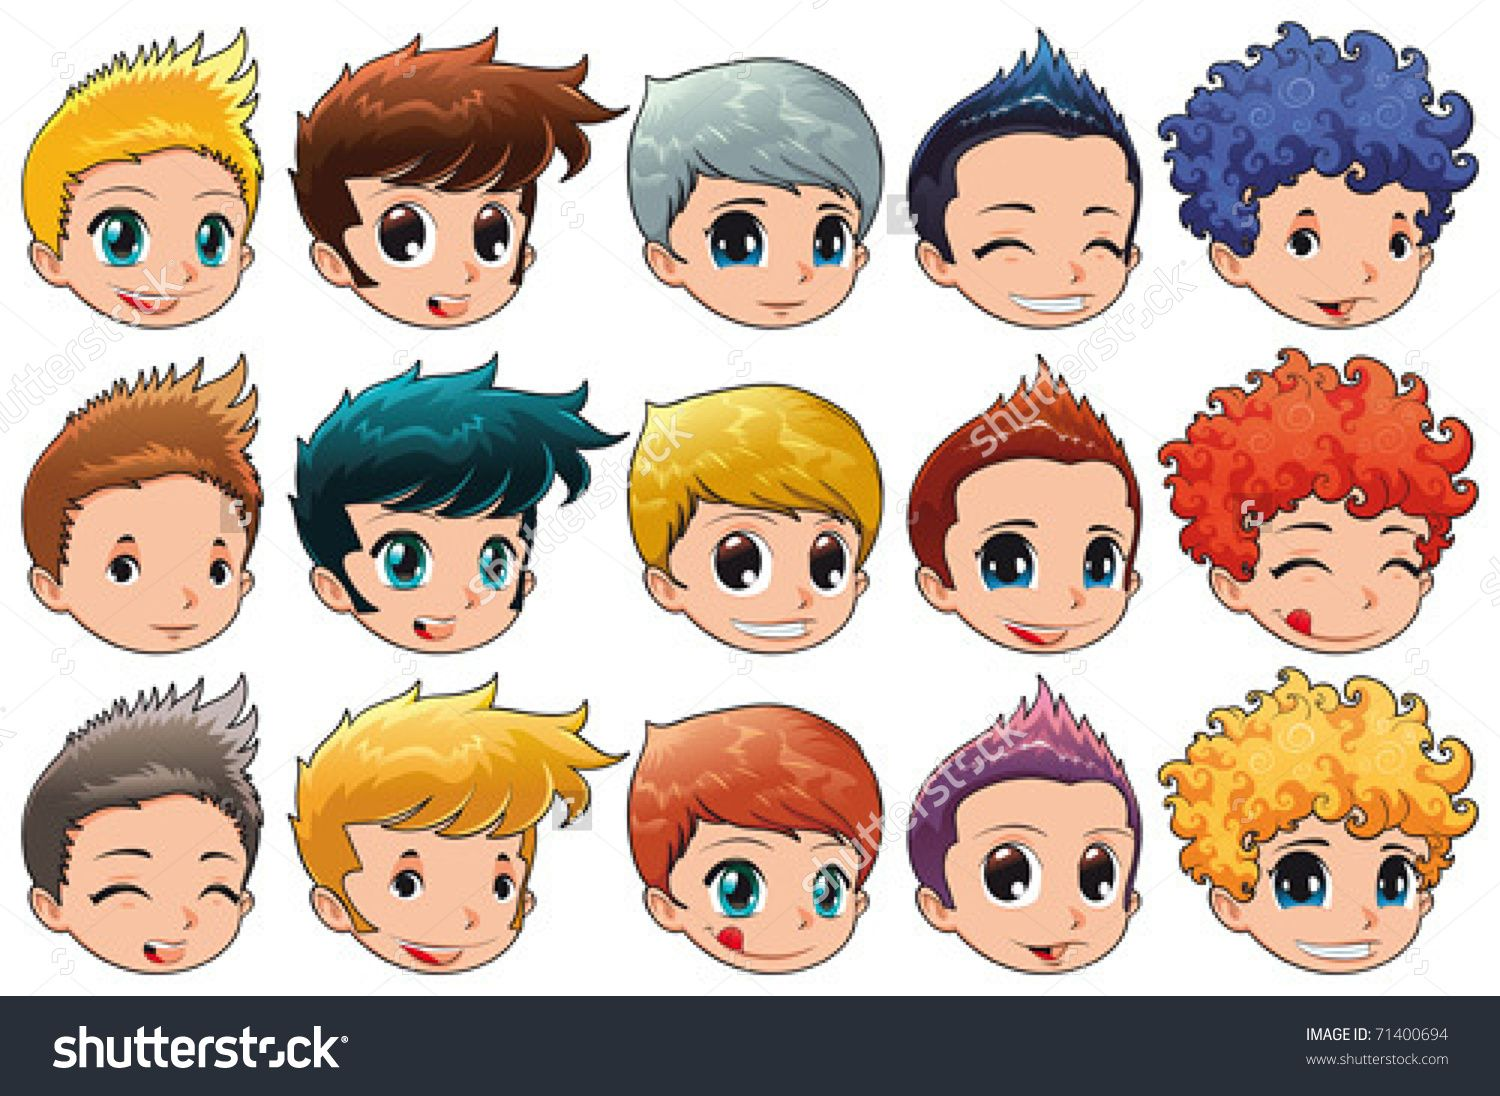 cartoon boy hair clipartfest curly hair cartoon boy boy hair rh pinterest co uk cartoon boy curly hair cartoon boy red hair